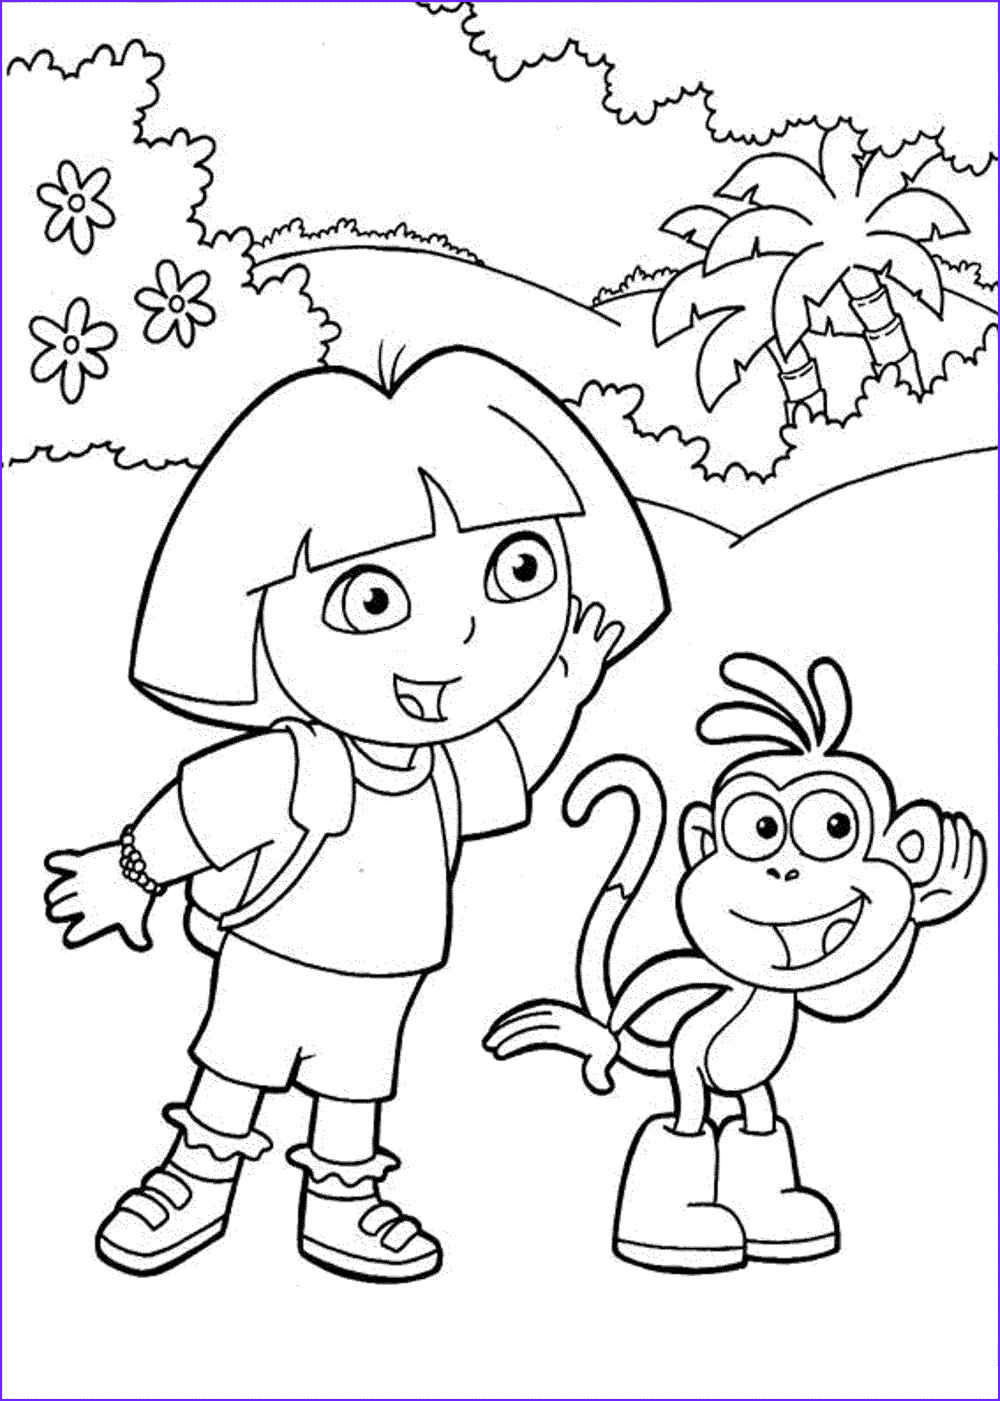 Dora the Explorer Coloring Best Of Photos Print & Download Dora Coloring Pages to Learn New Things